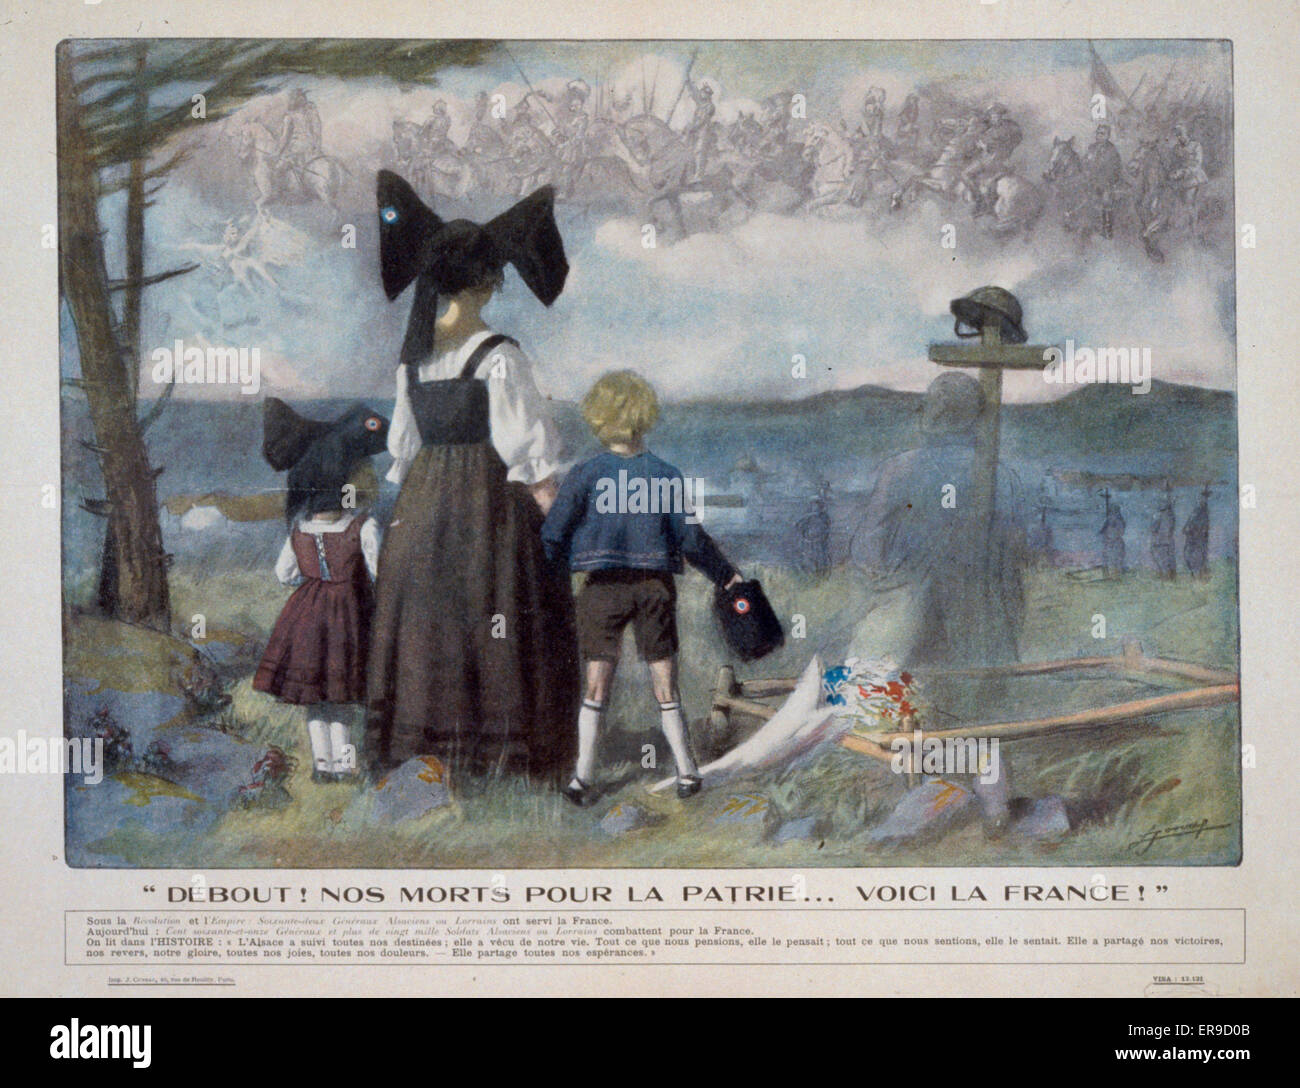 Debout! Nos morts pour la patrievoici la France!. Rear view of an Alsatian woman and her two children. They are - Stock Image